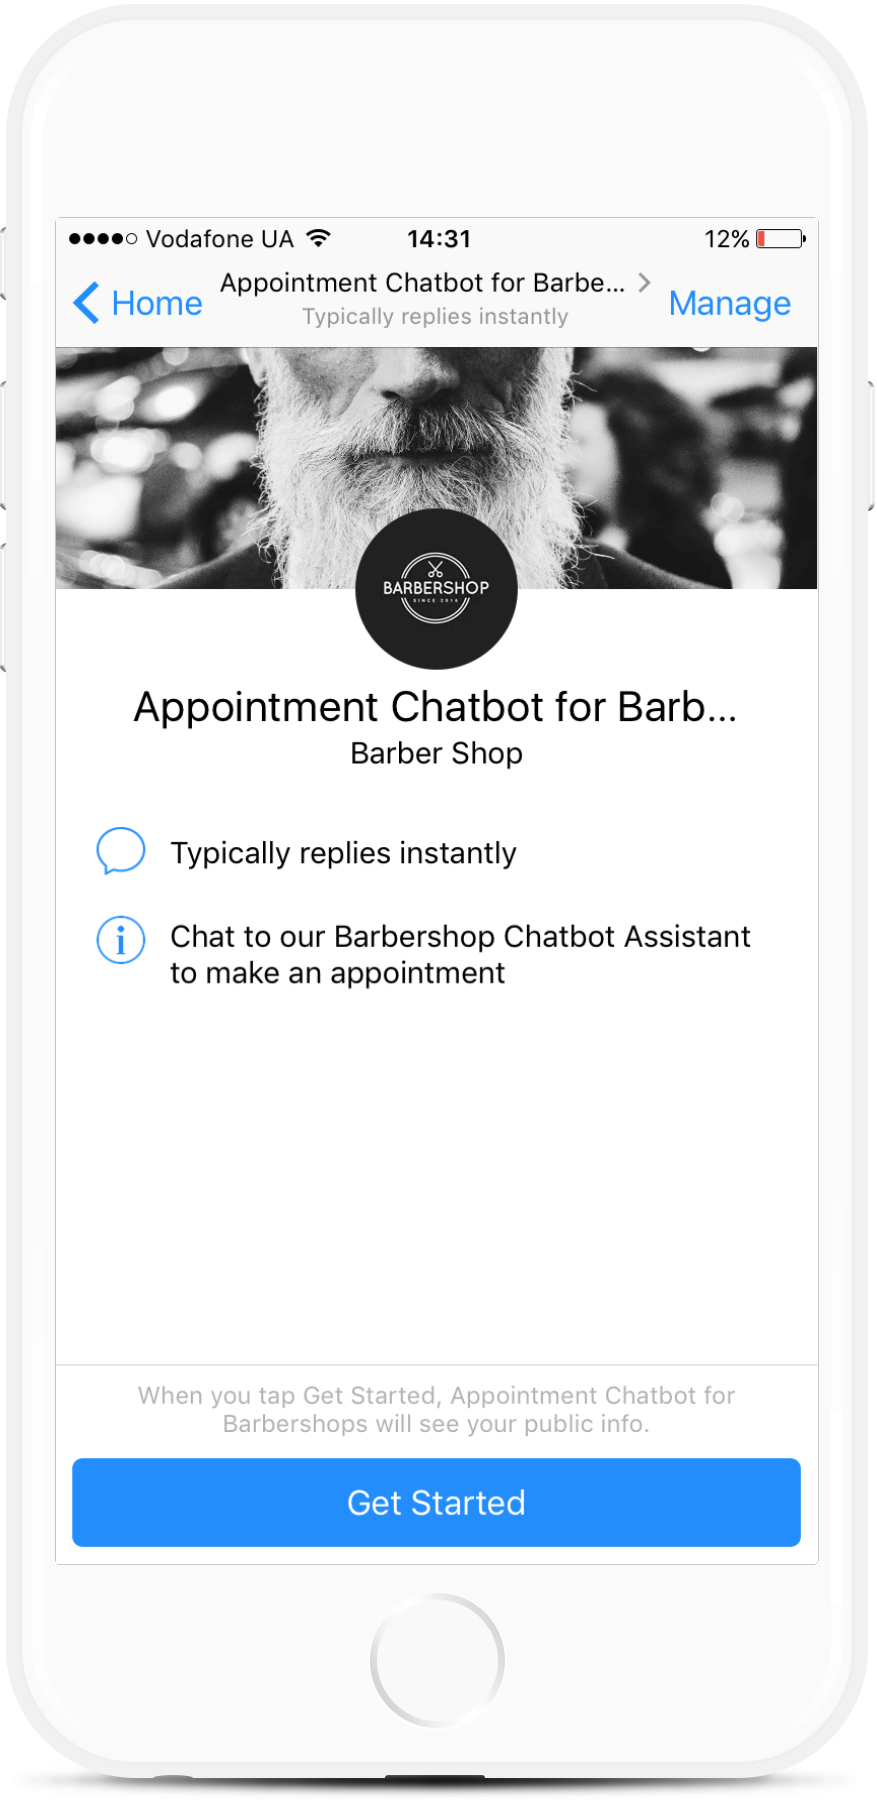 Facebook Appointment Chatbot for Barbershops